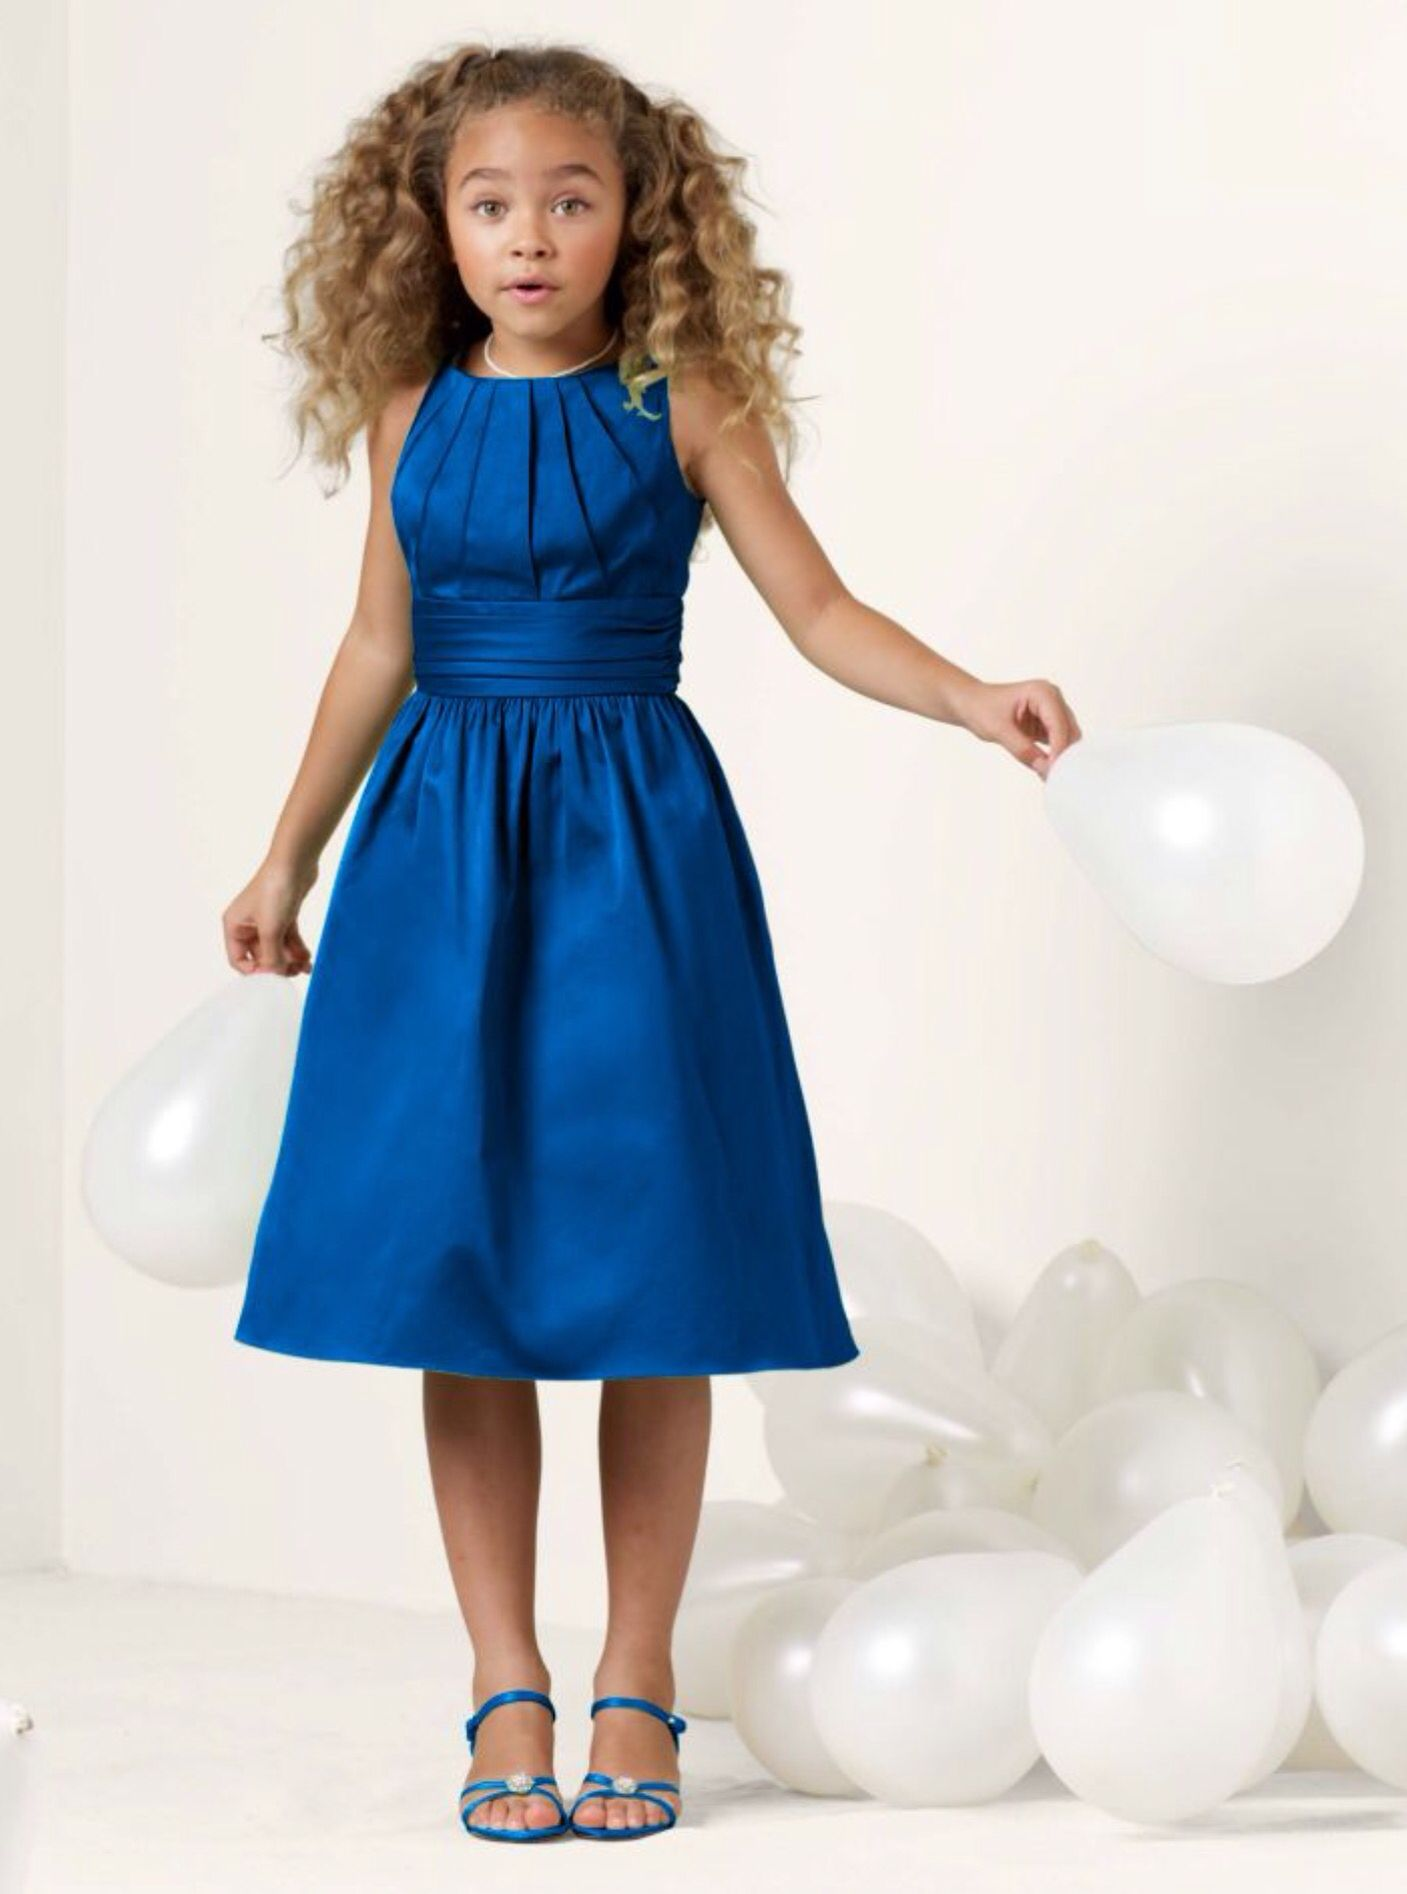 b207348d32c Adorable girls dress in horizon blue from David s bridal. More